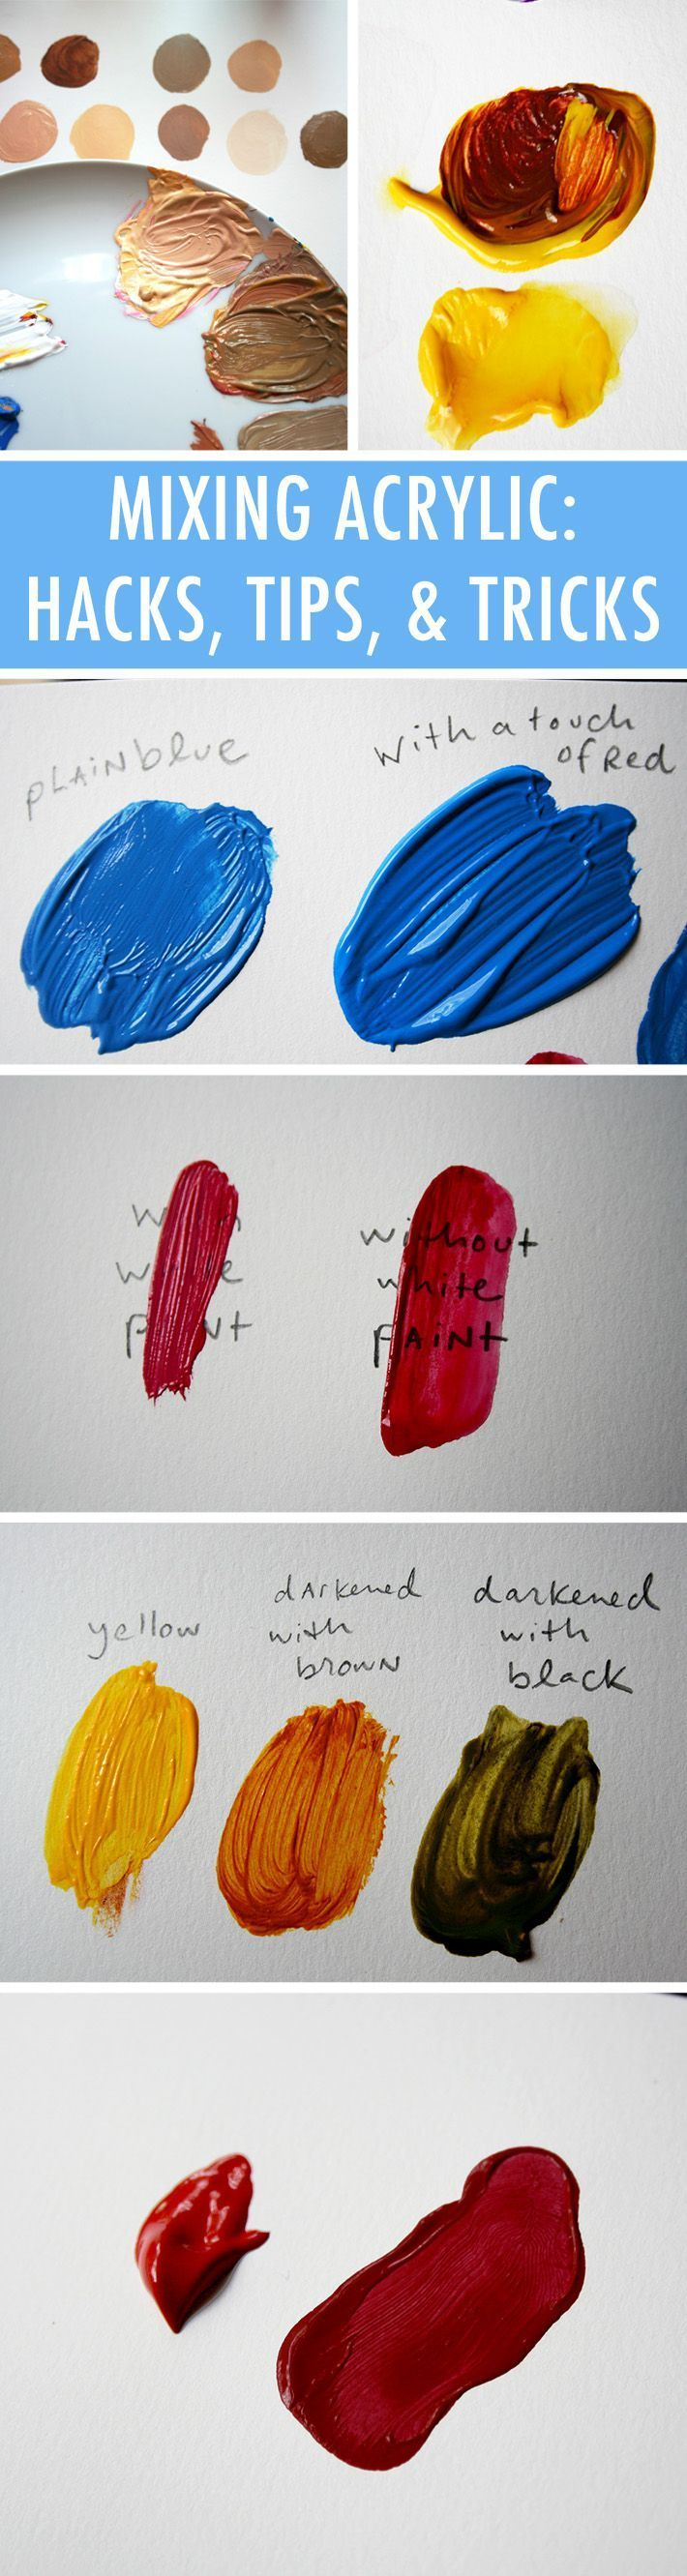 best acrylic painting techniques images on pinterest acrylic